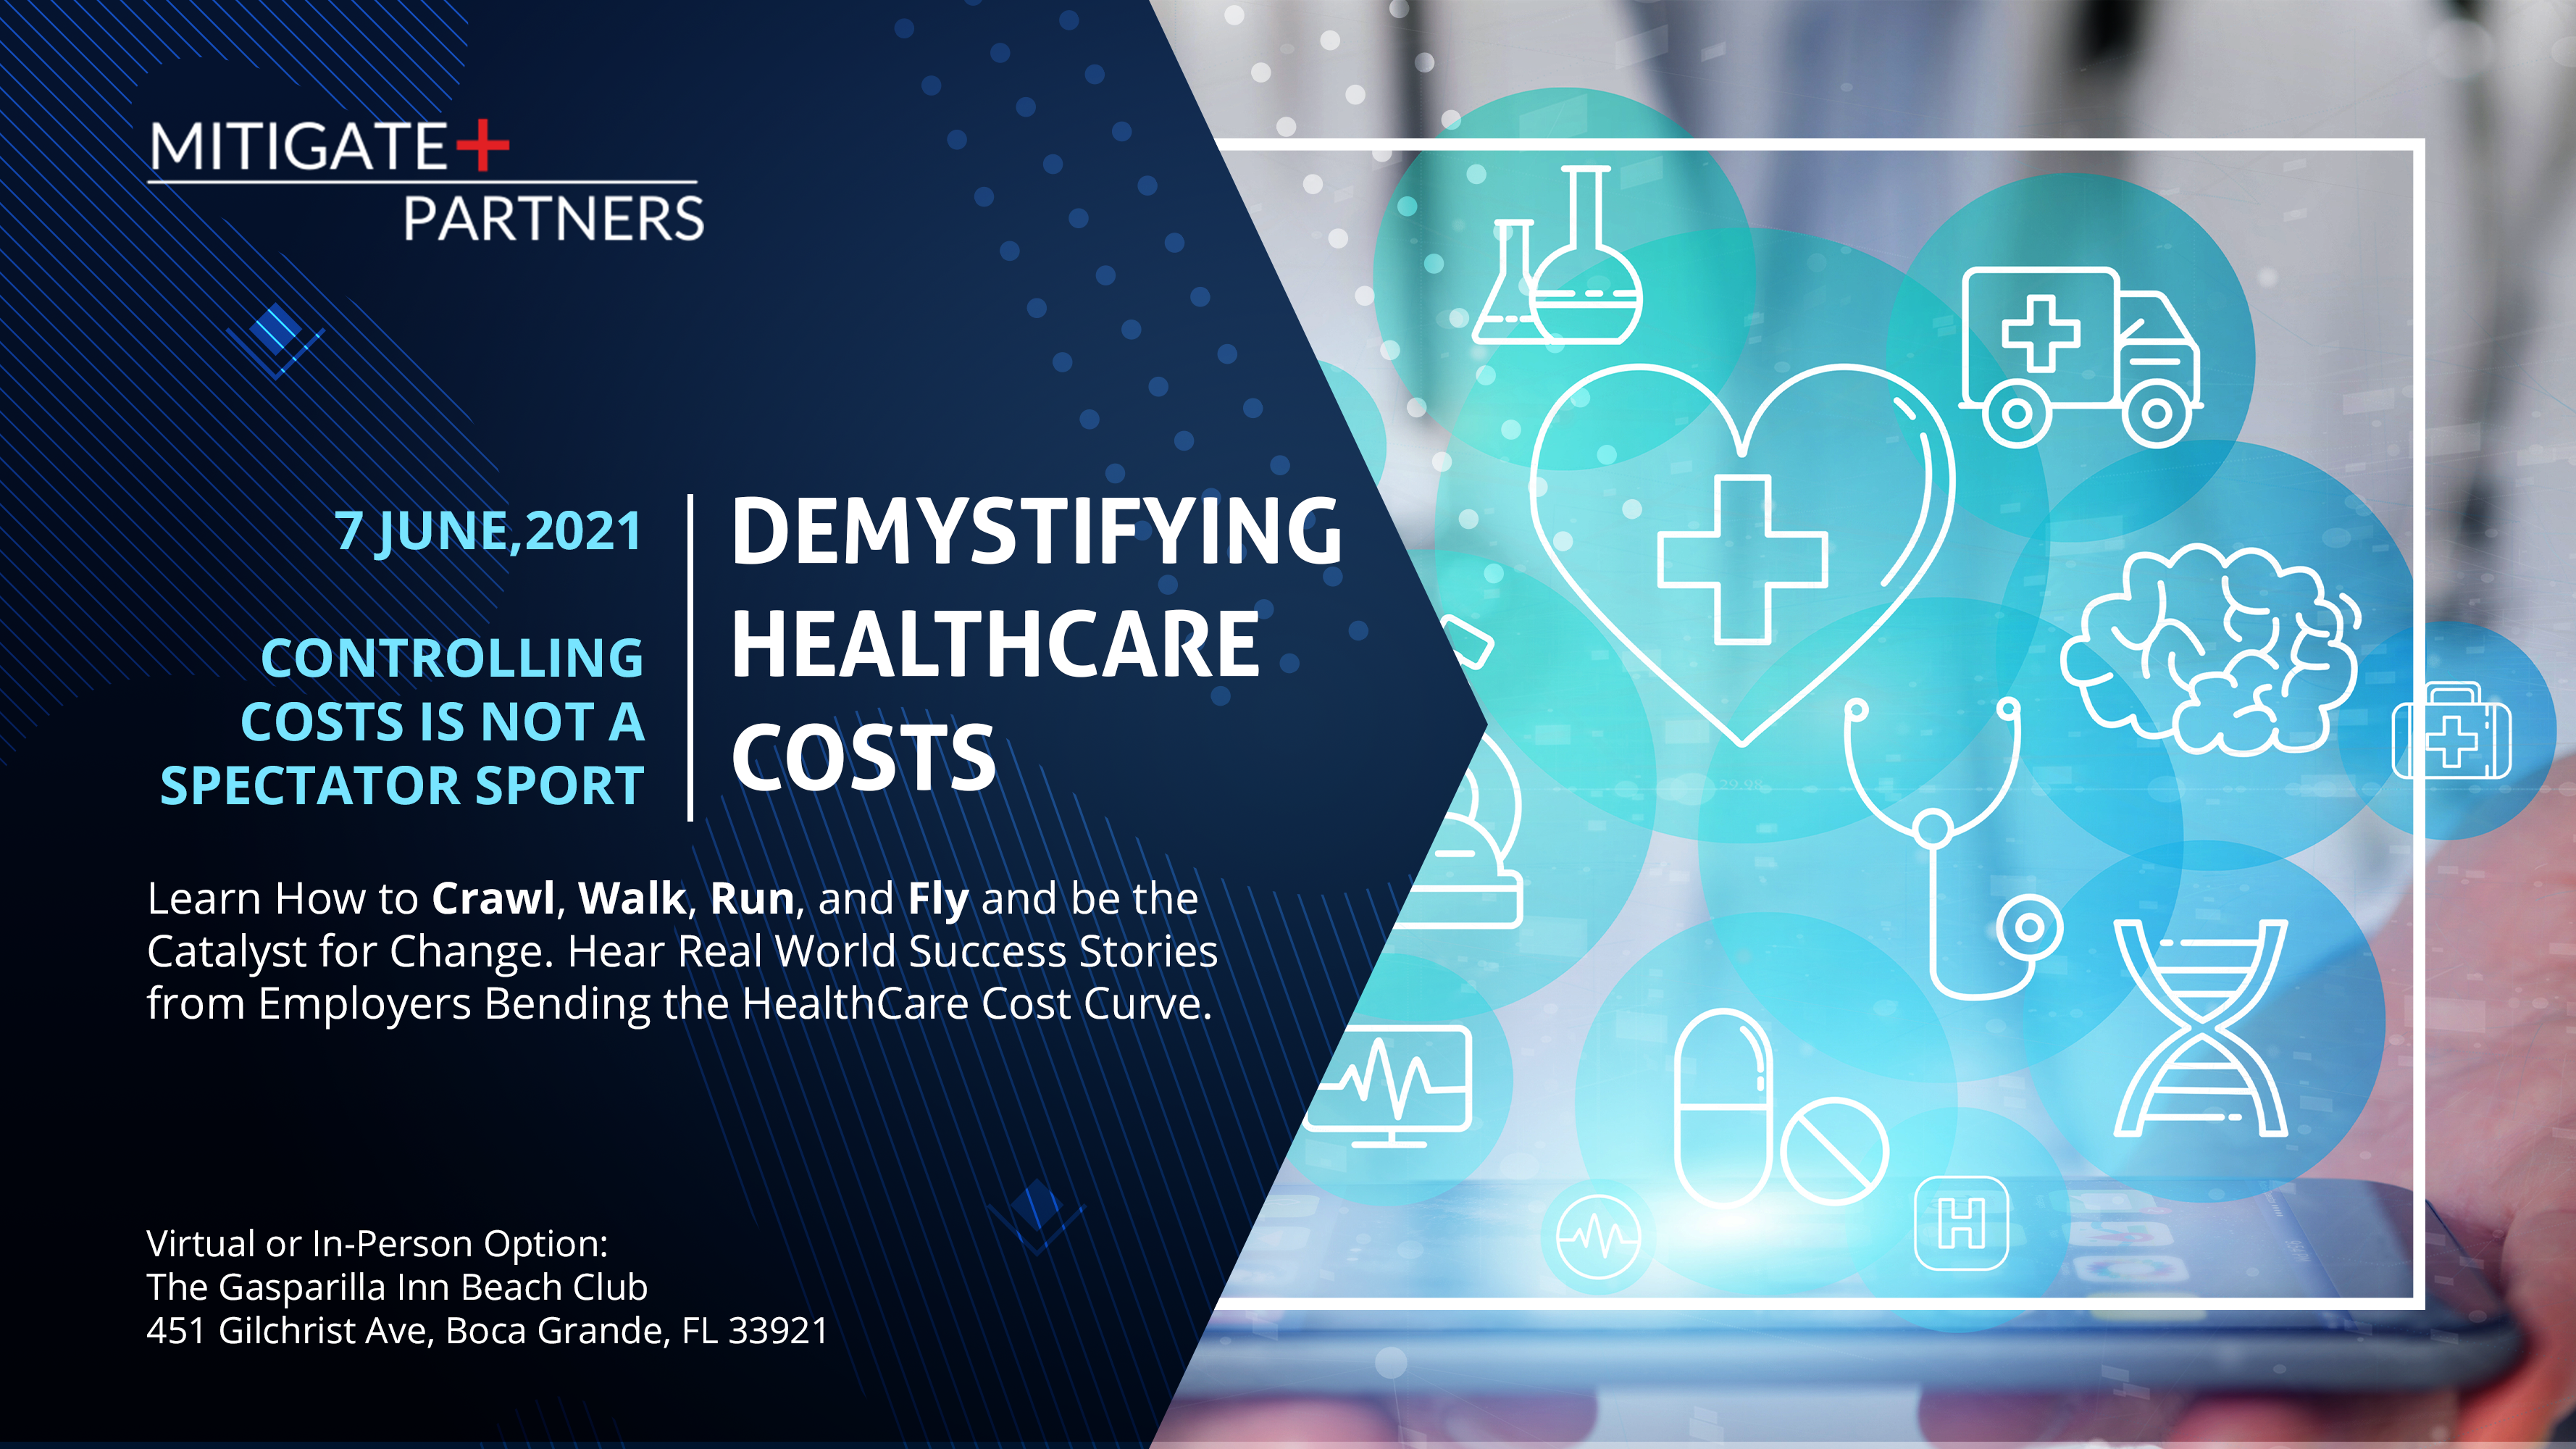 demystifying healthcare costs